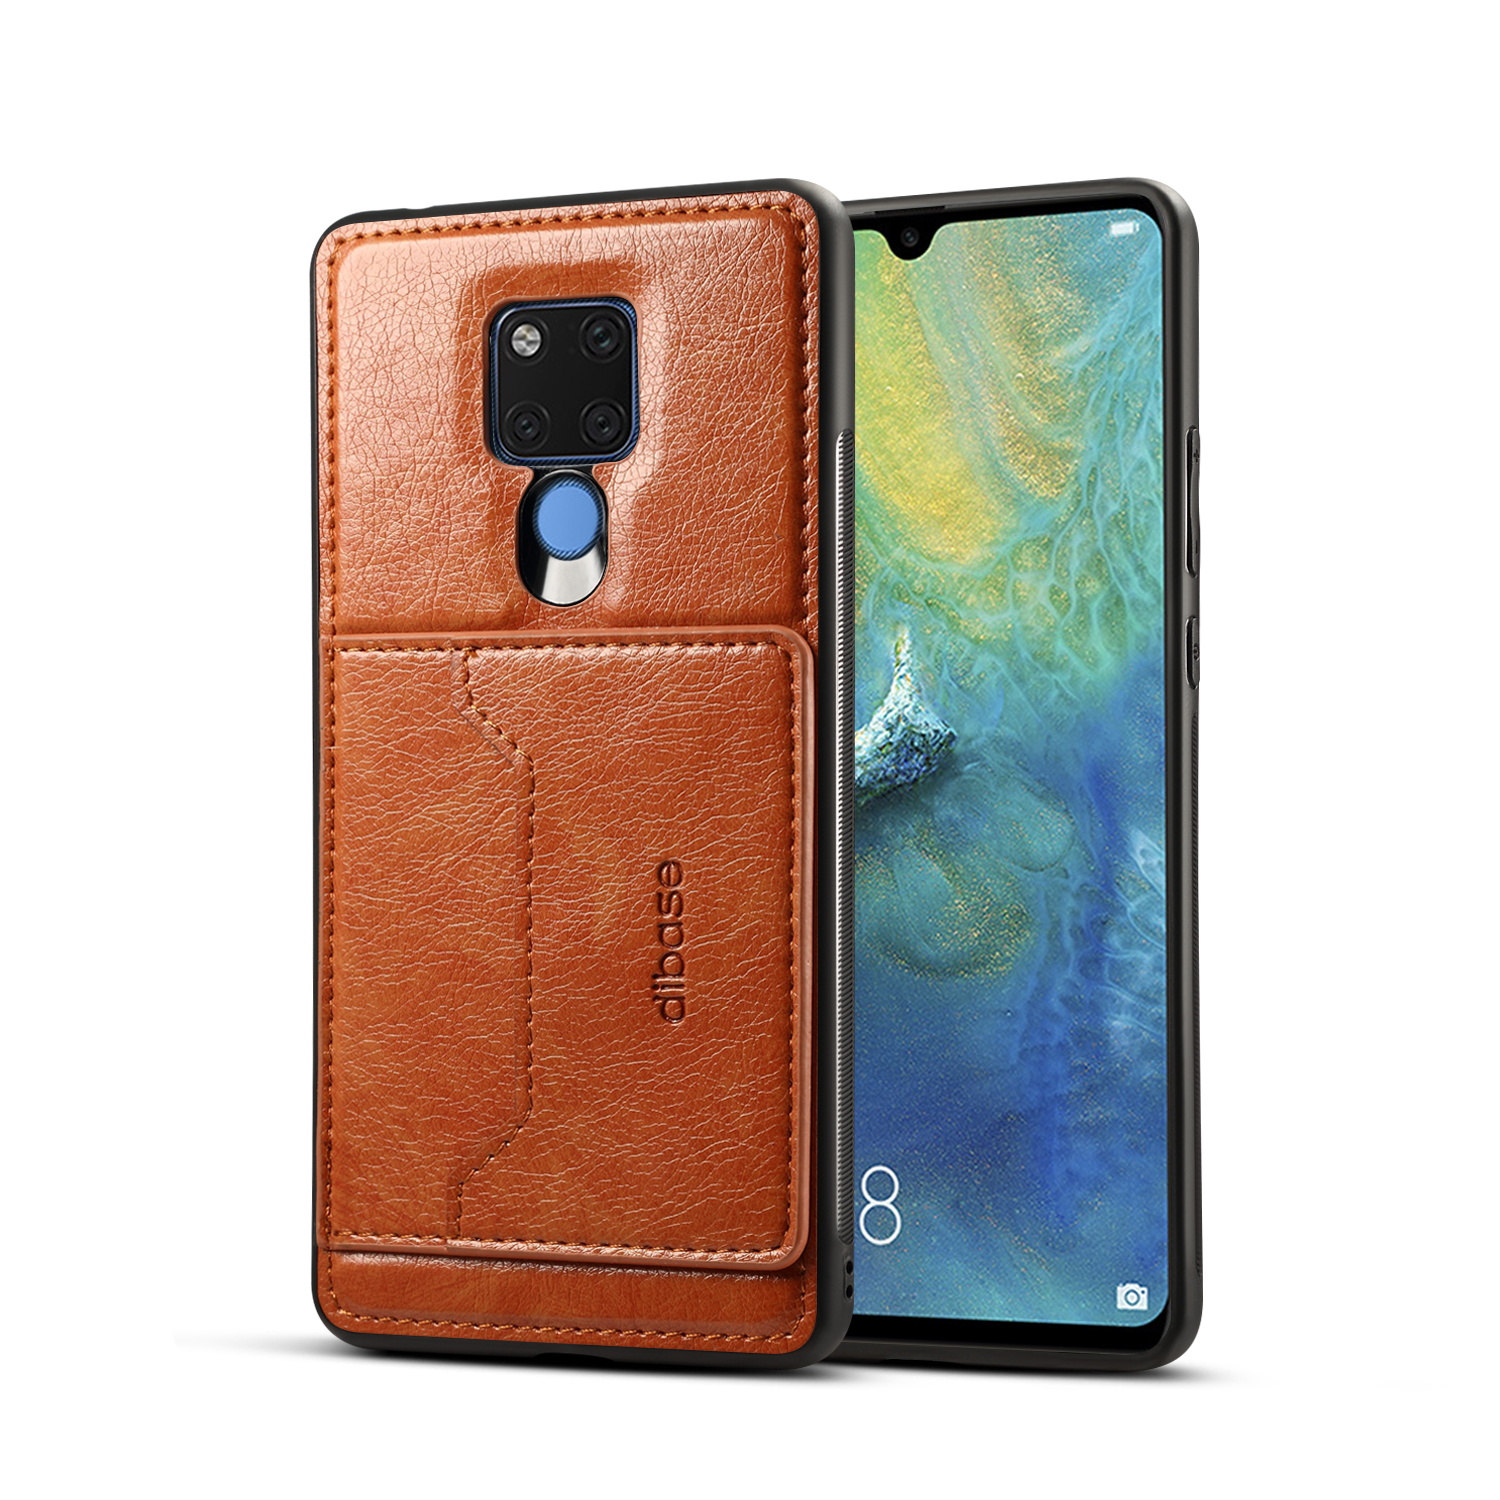 For HUAWEI MATE 20X 2 in 1 Retro PU Leather Wallet Stand Non-slip Shockproof Cell Phone Case brown